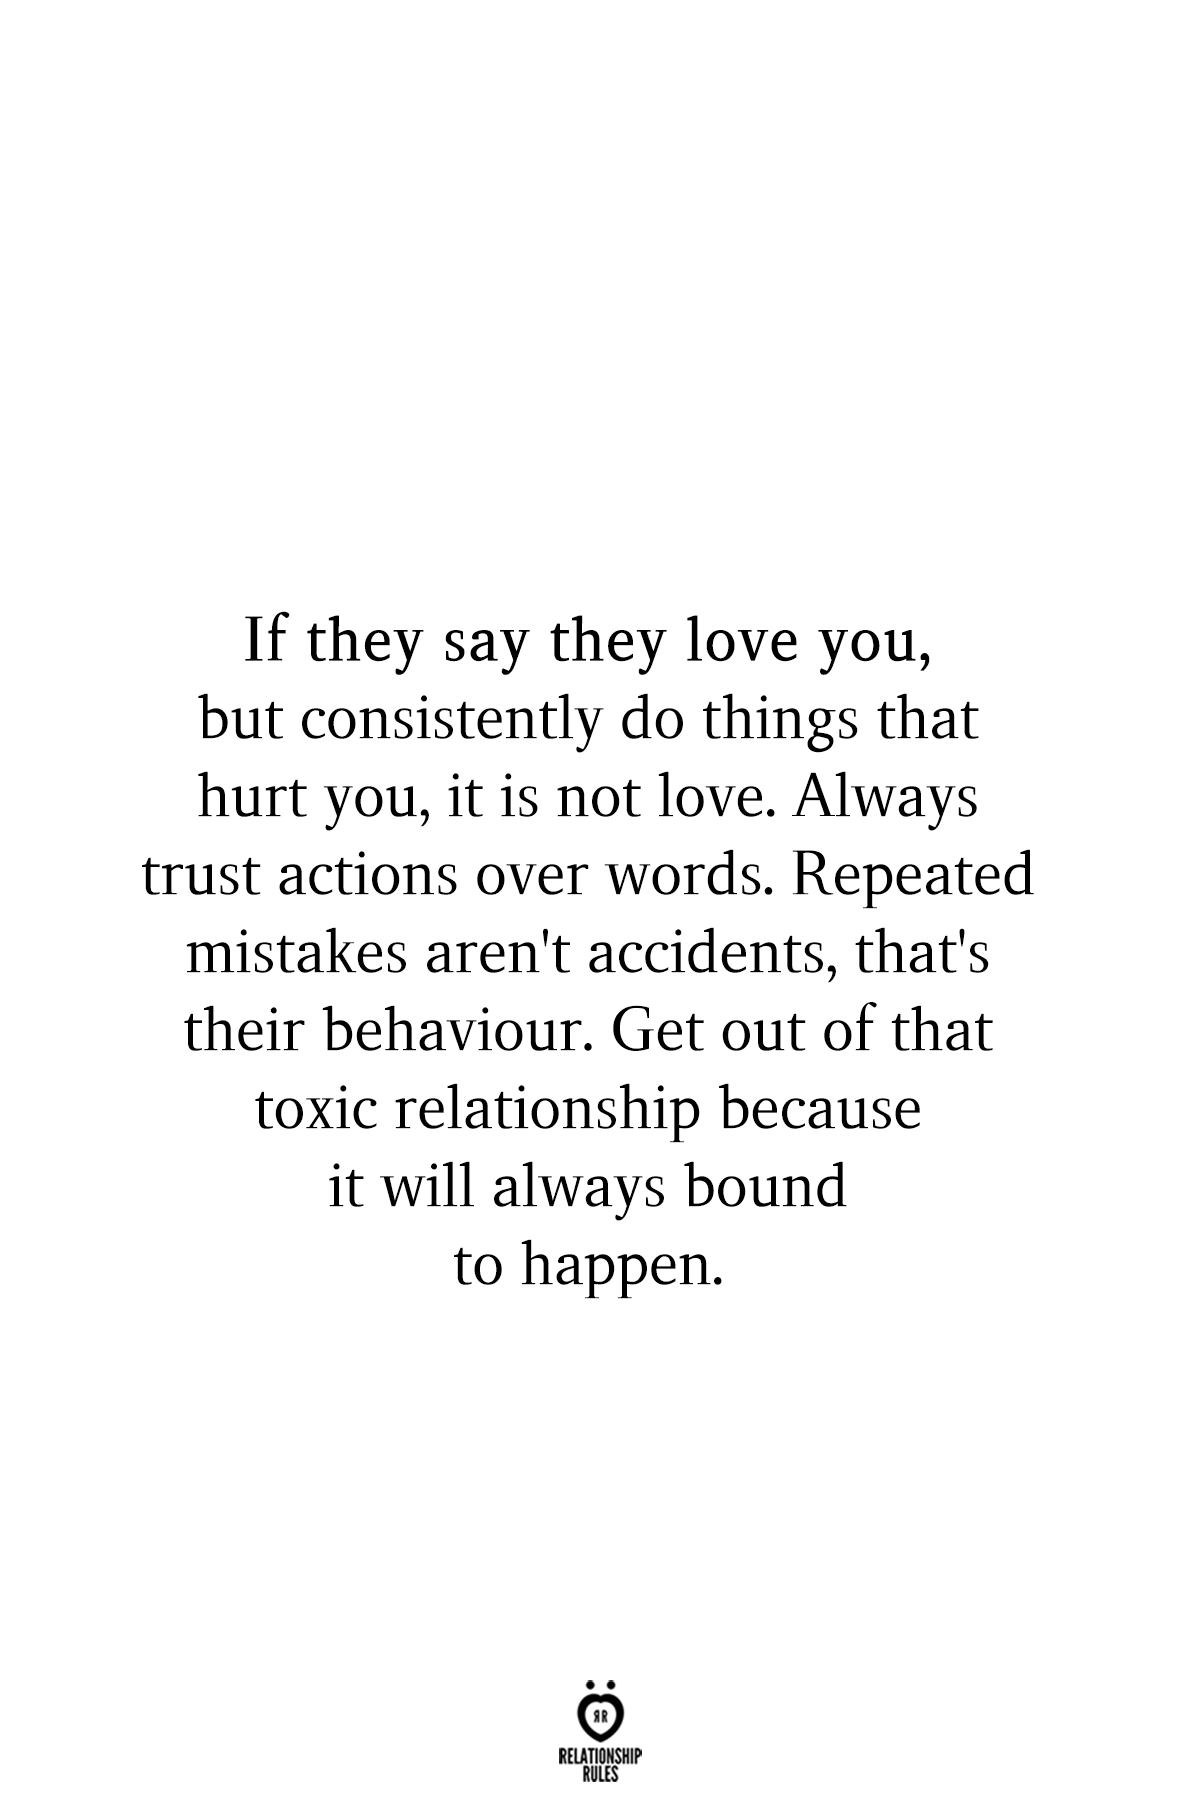 If They Say They Love You, But Consistently Do Things That Hurt You